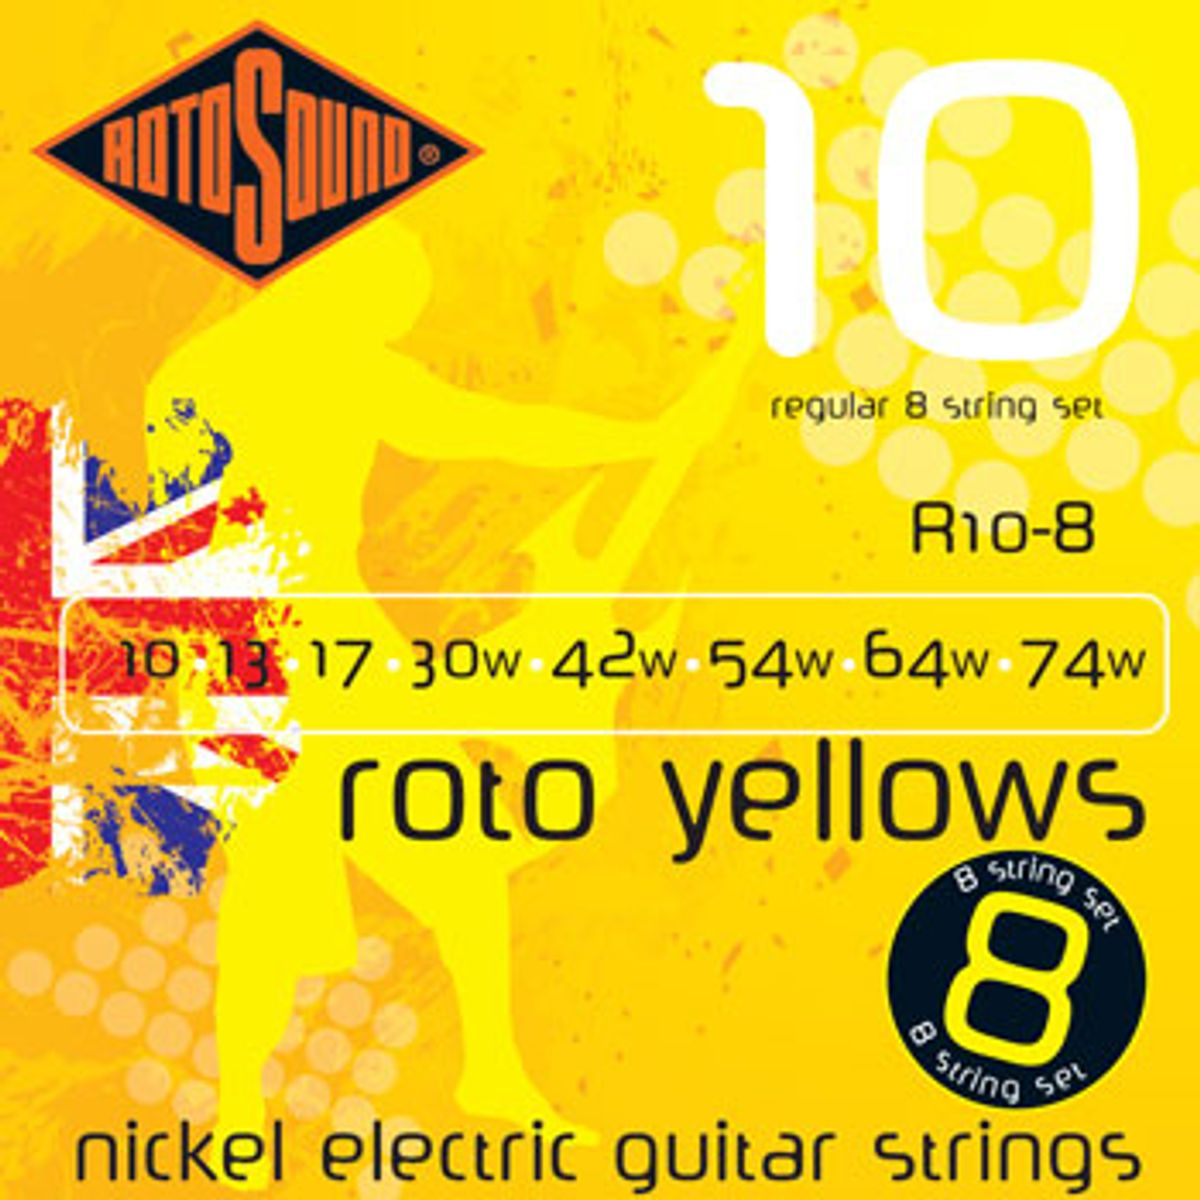 Rotosound Announce New 8-String Set